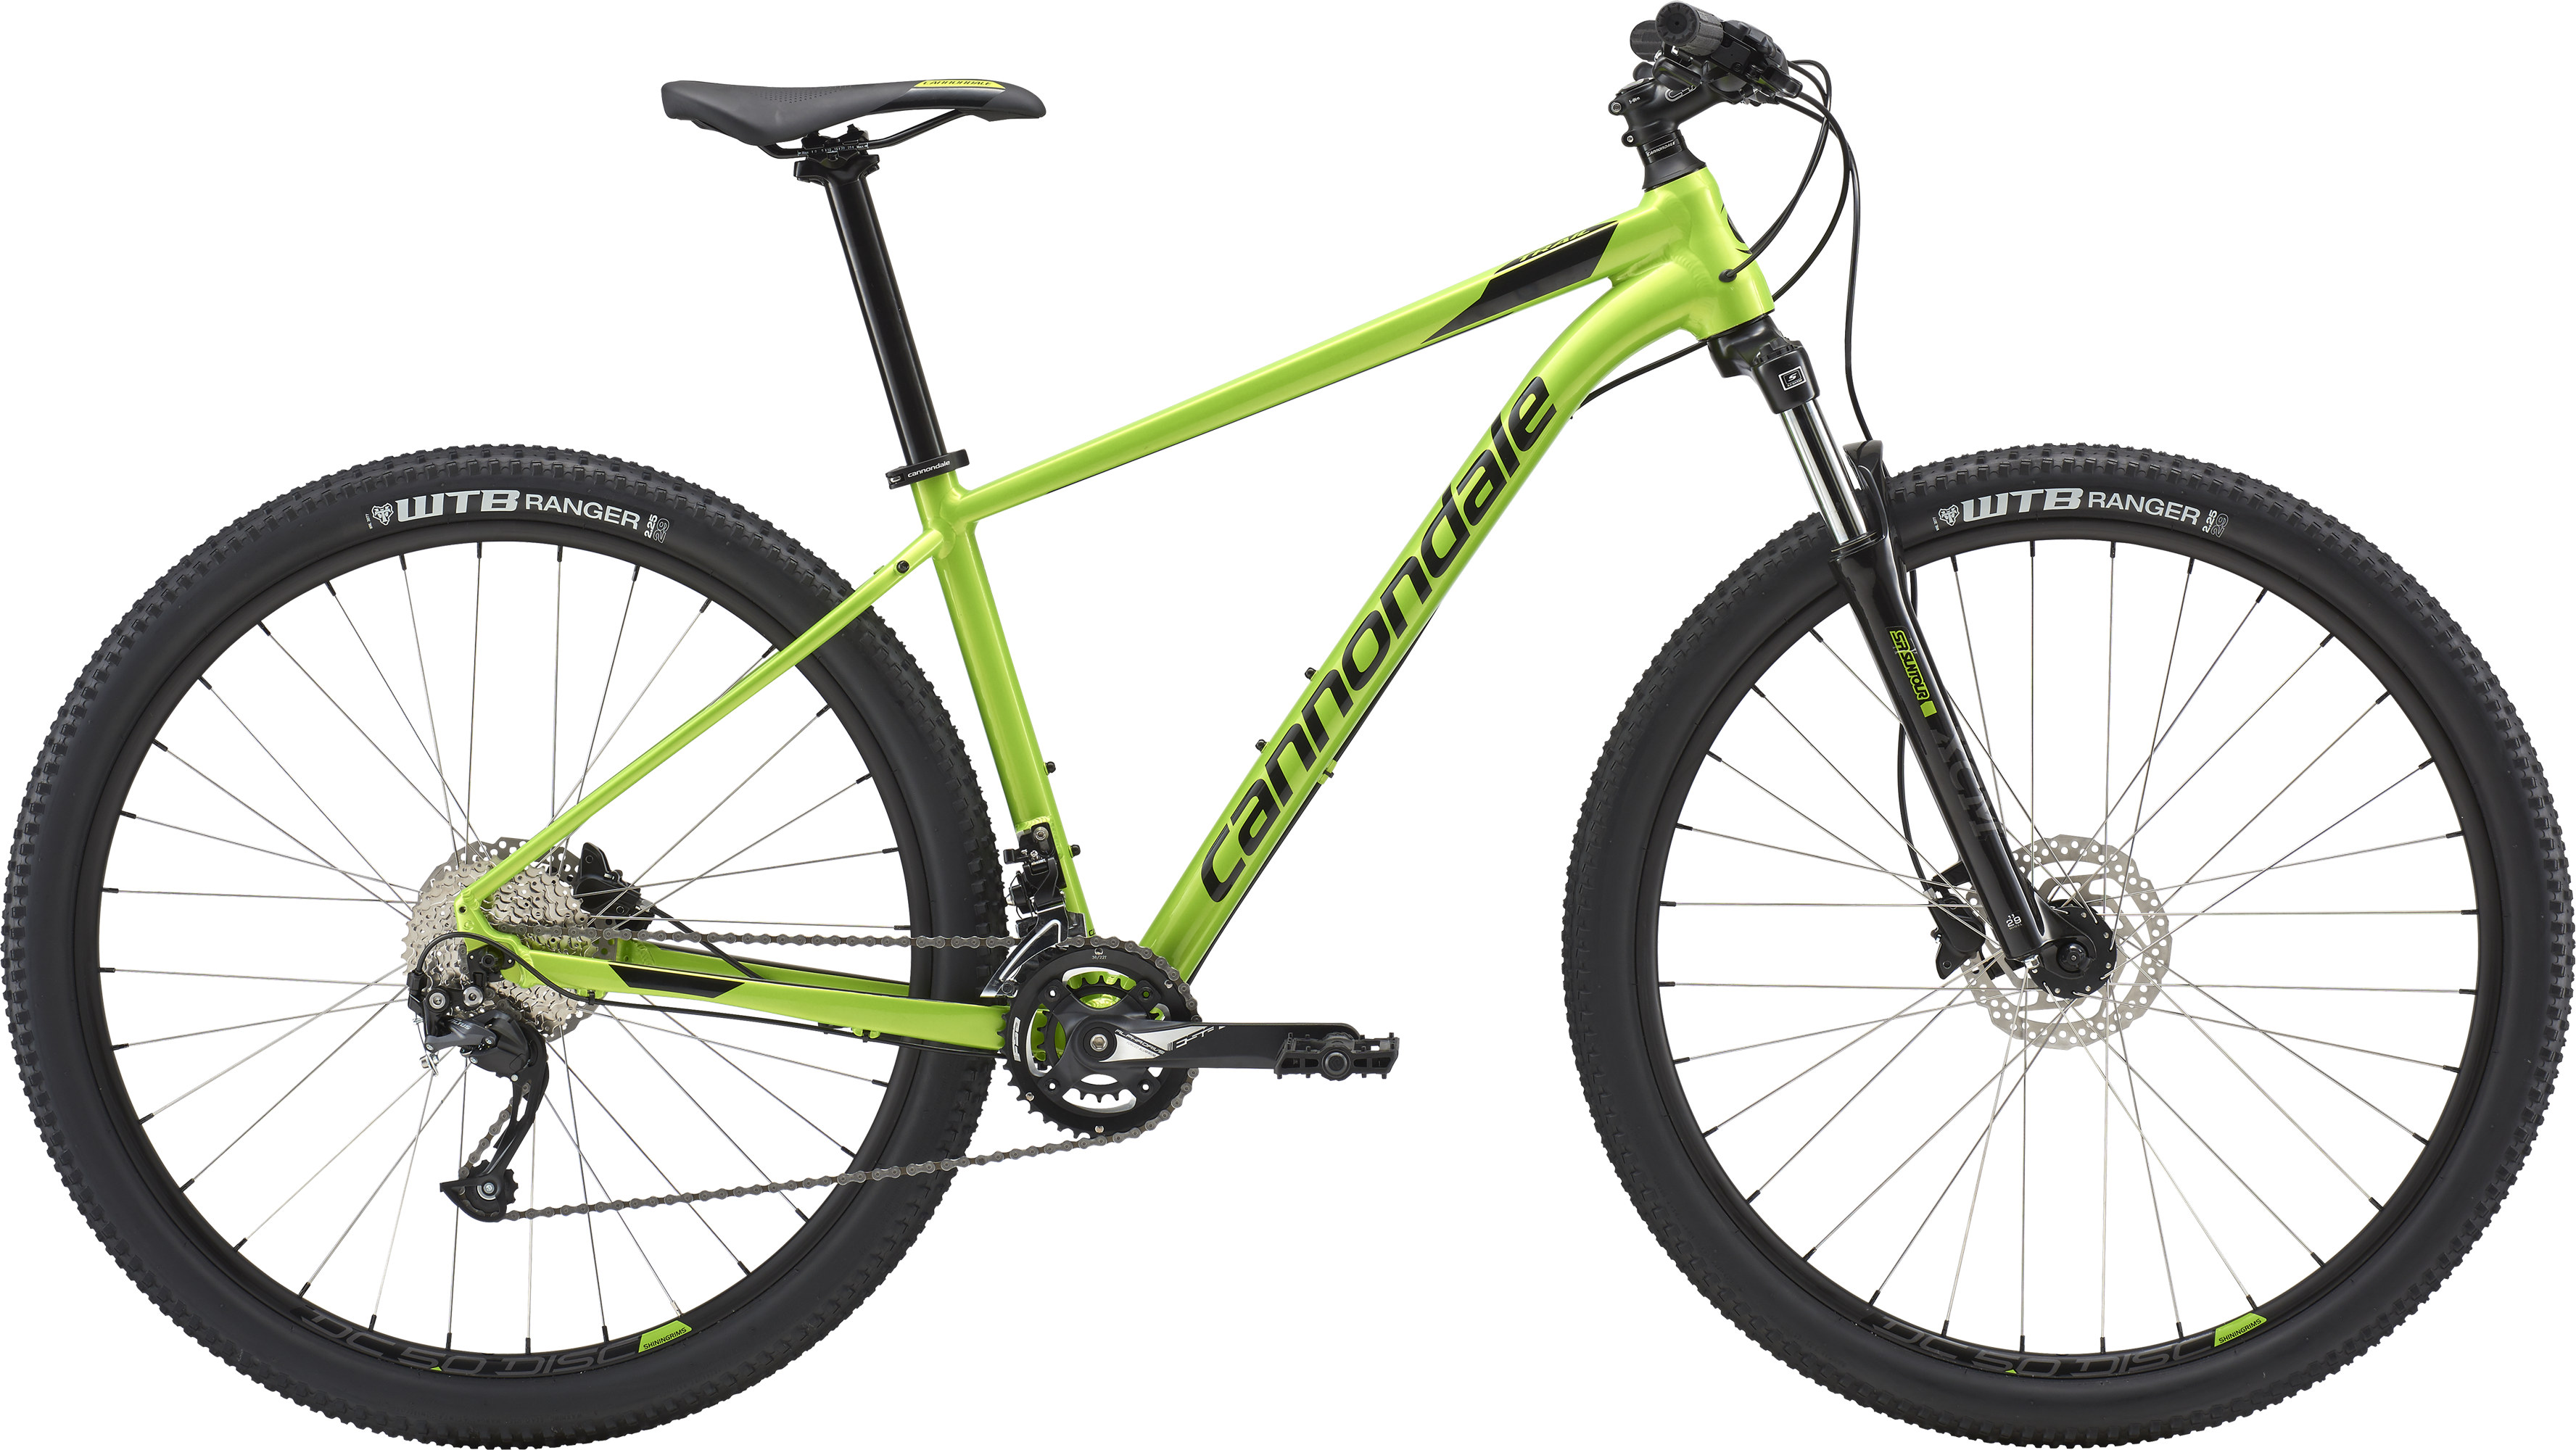 4a6cd146946 Cannondale Trail 7 Hardtail Mountain Bike 2019 Green £424.99